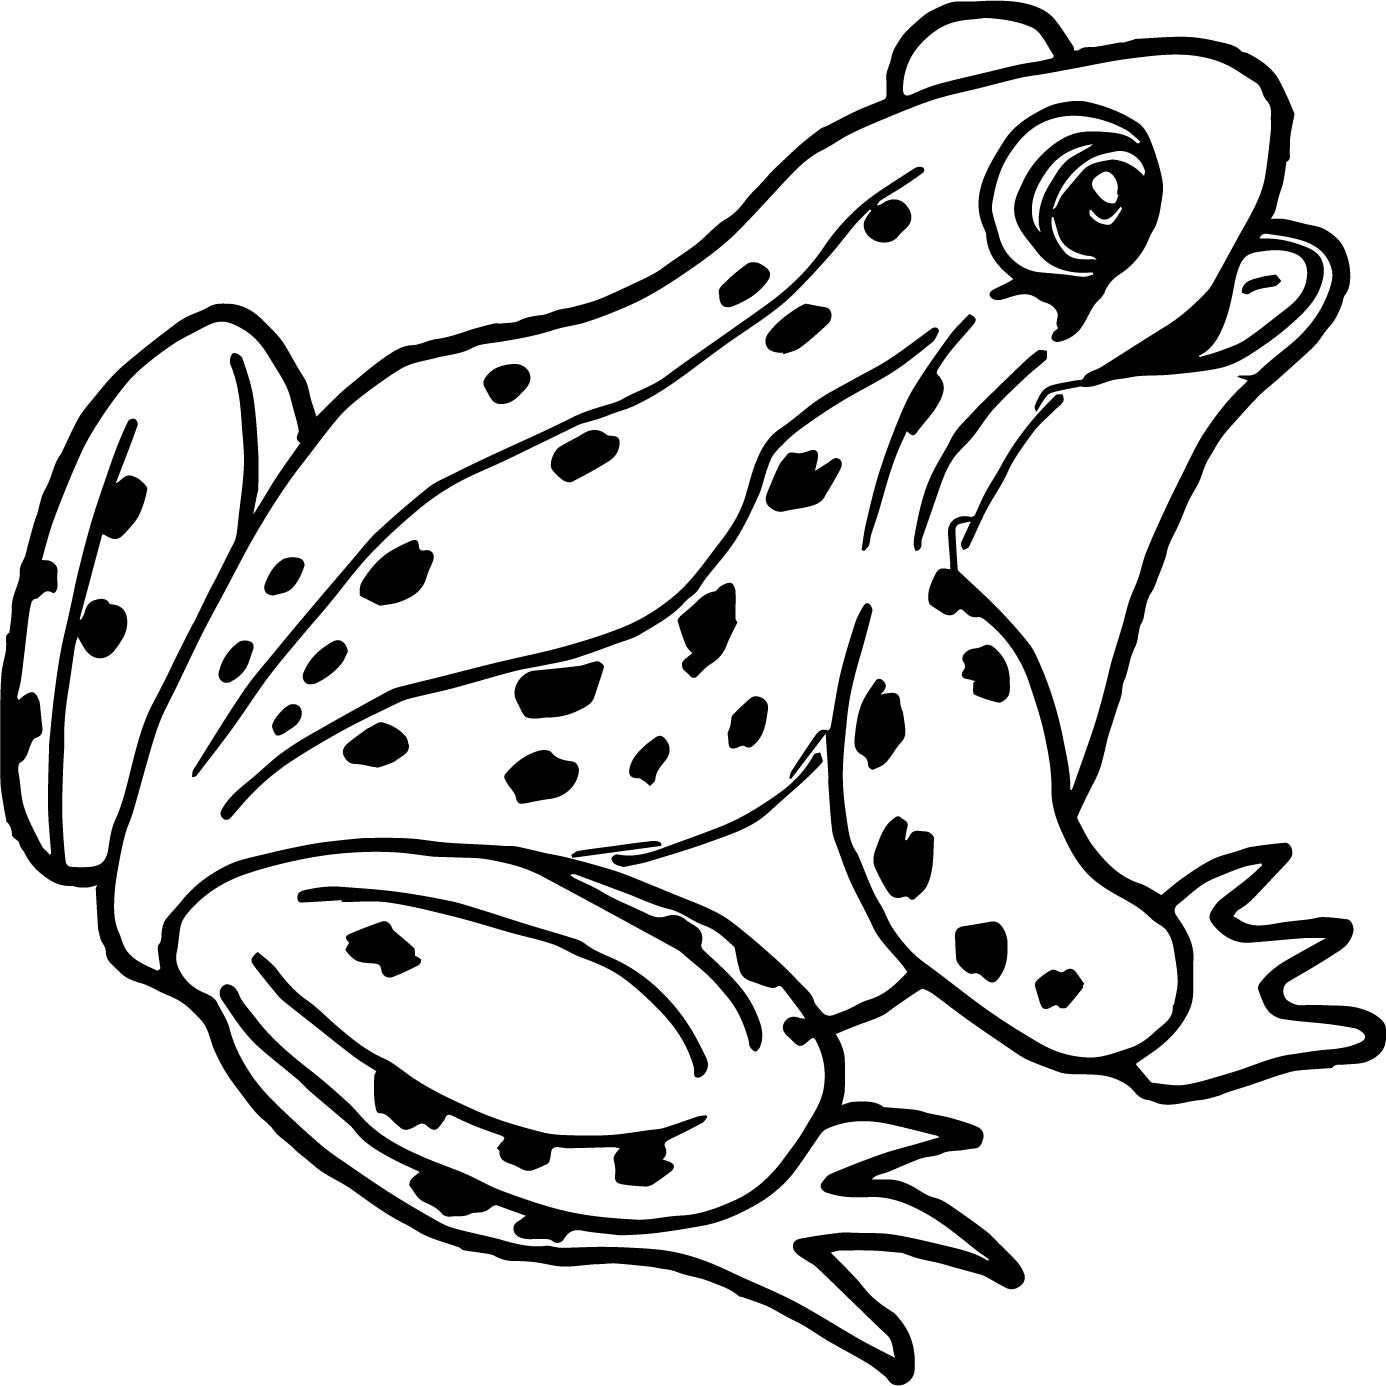 Frog outline free download best frog outline on for Free printable frog coloring pages